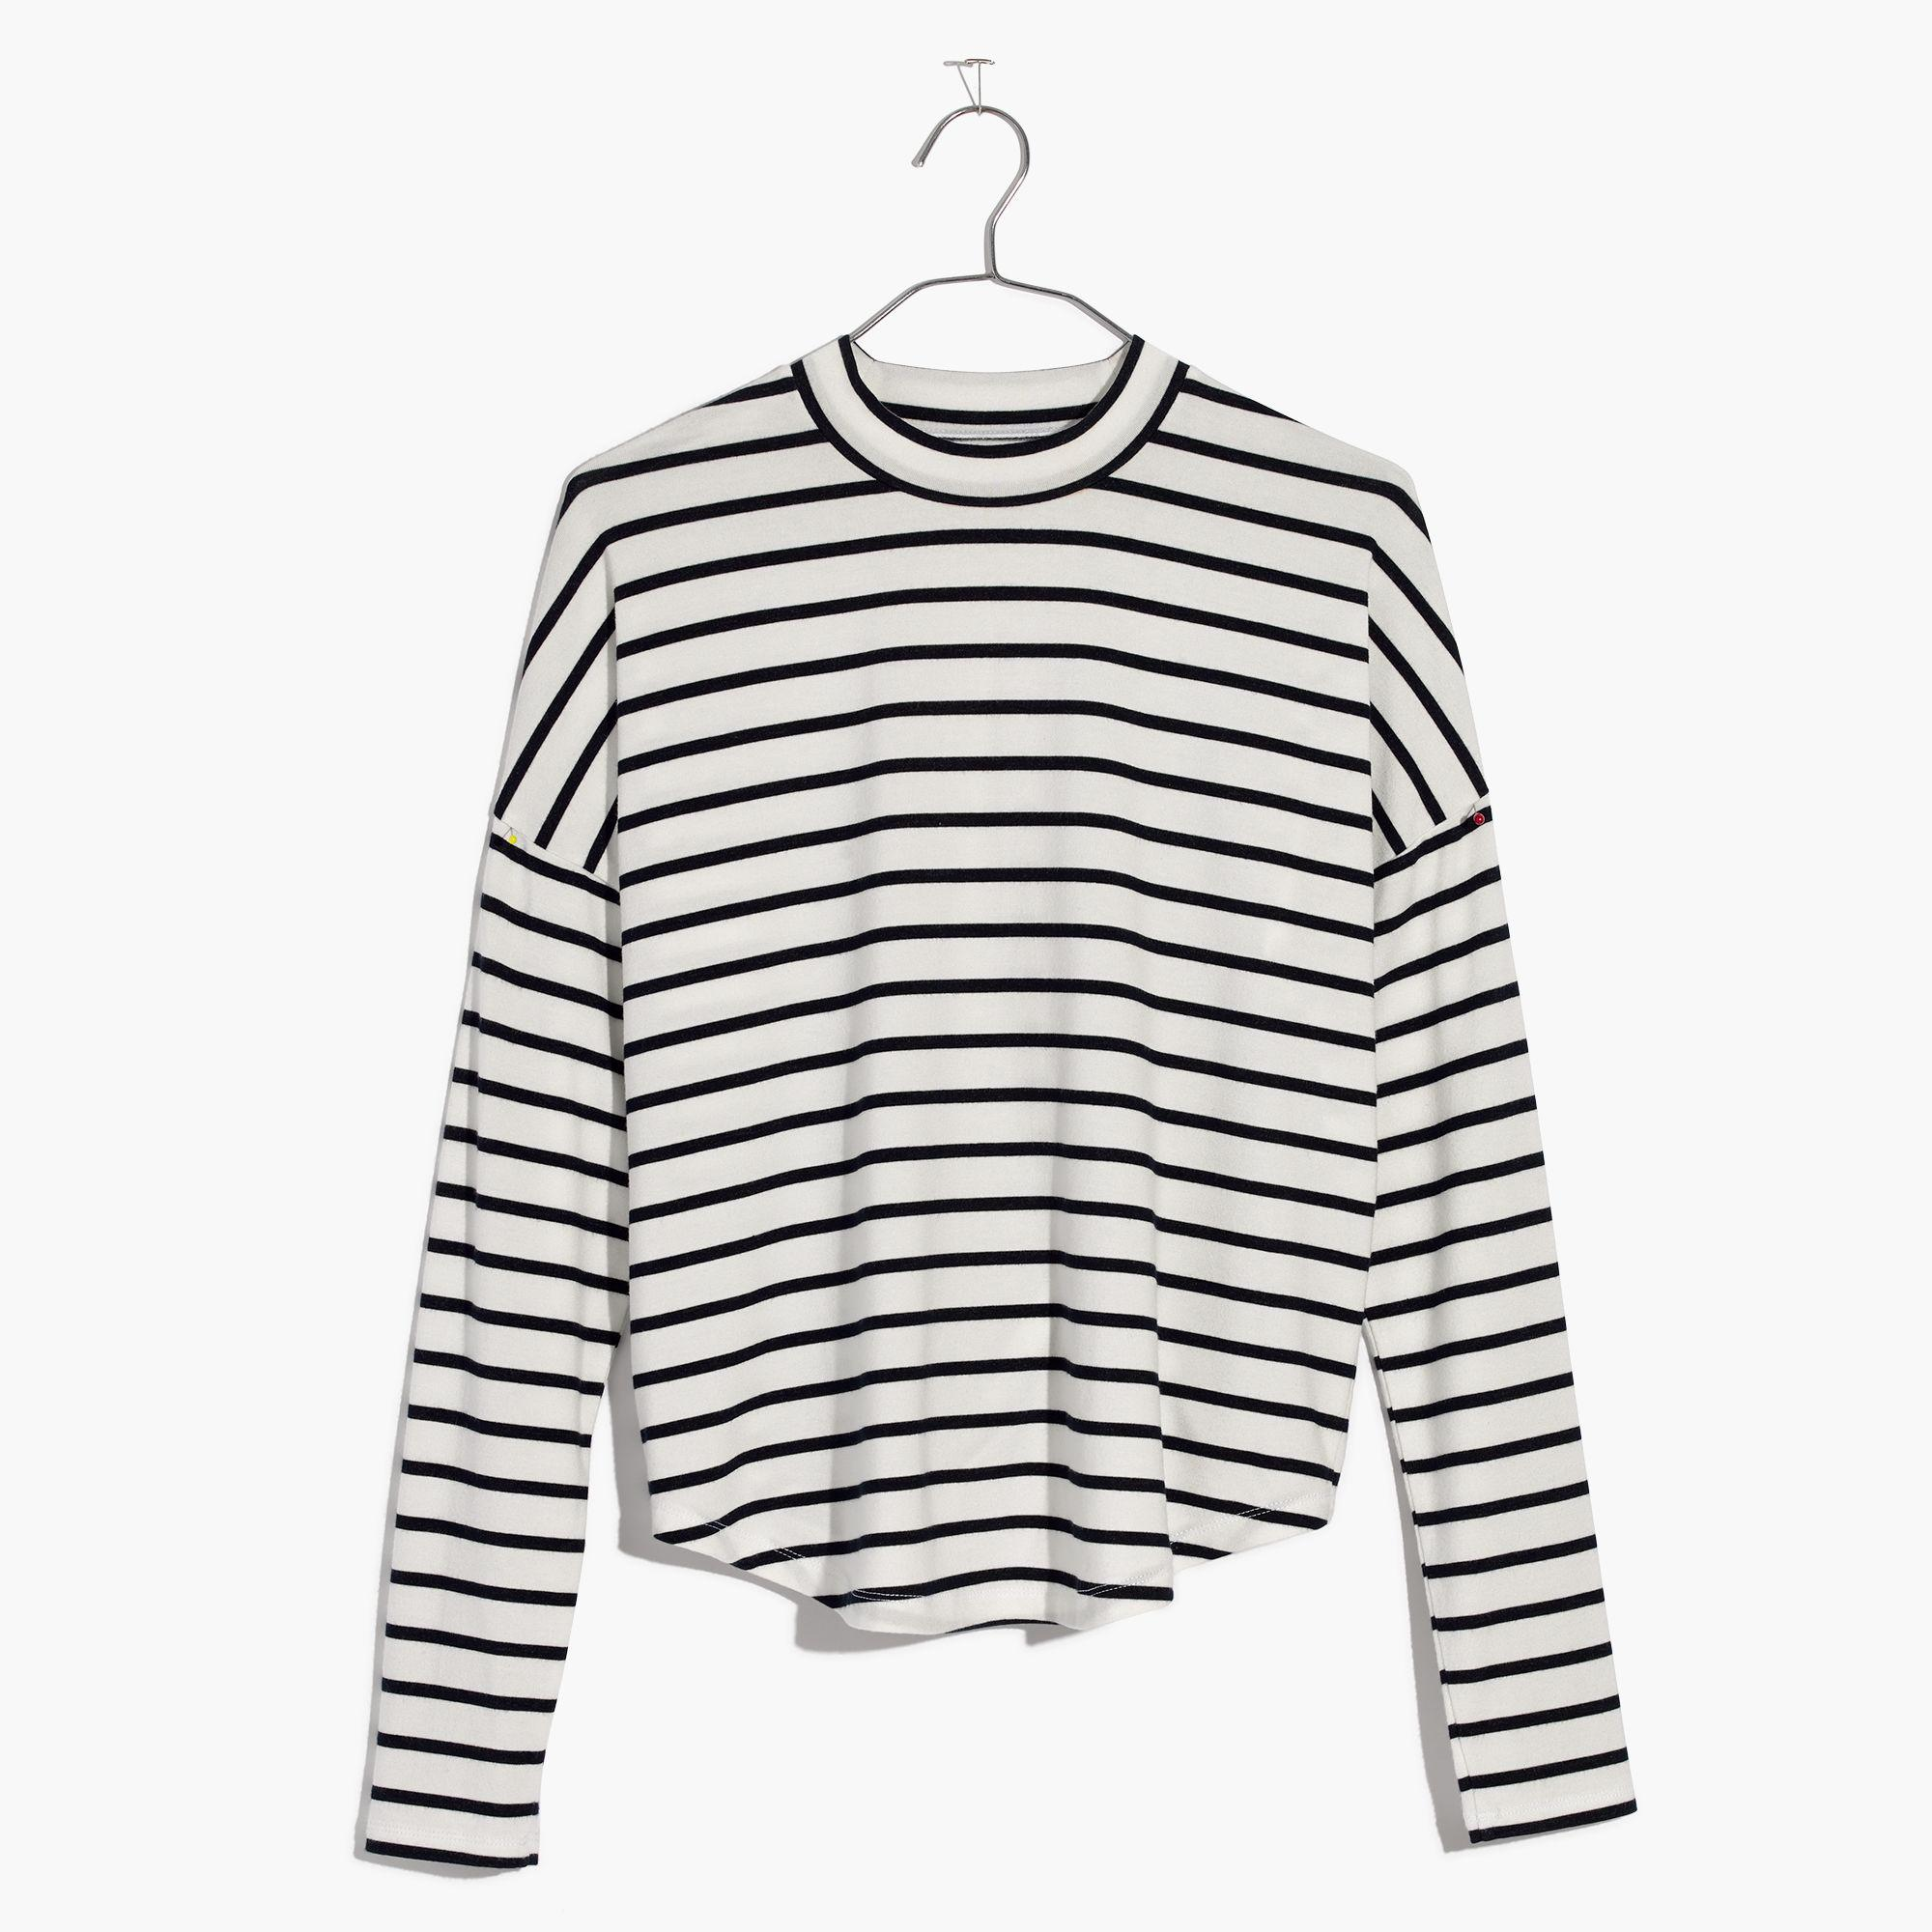 0890caa361 Madewell Sandwashed Long-sleeve Mockneck Top In Stripe in White - Lyst